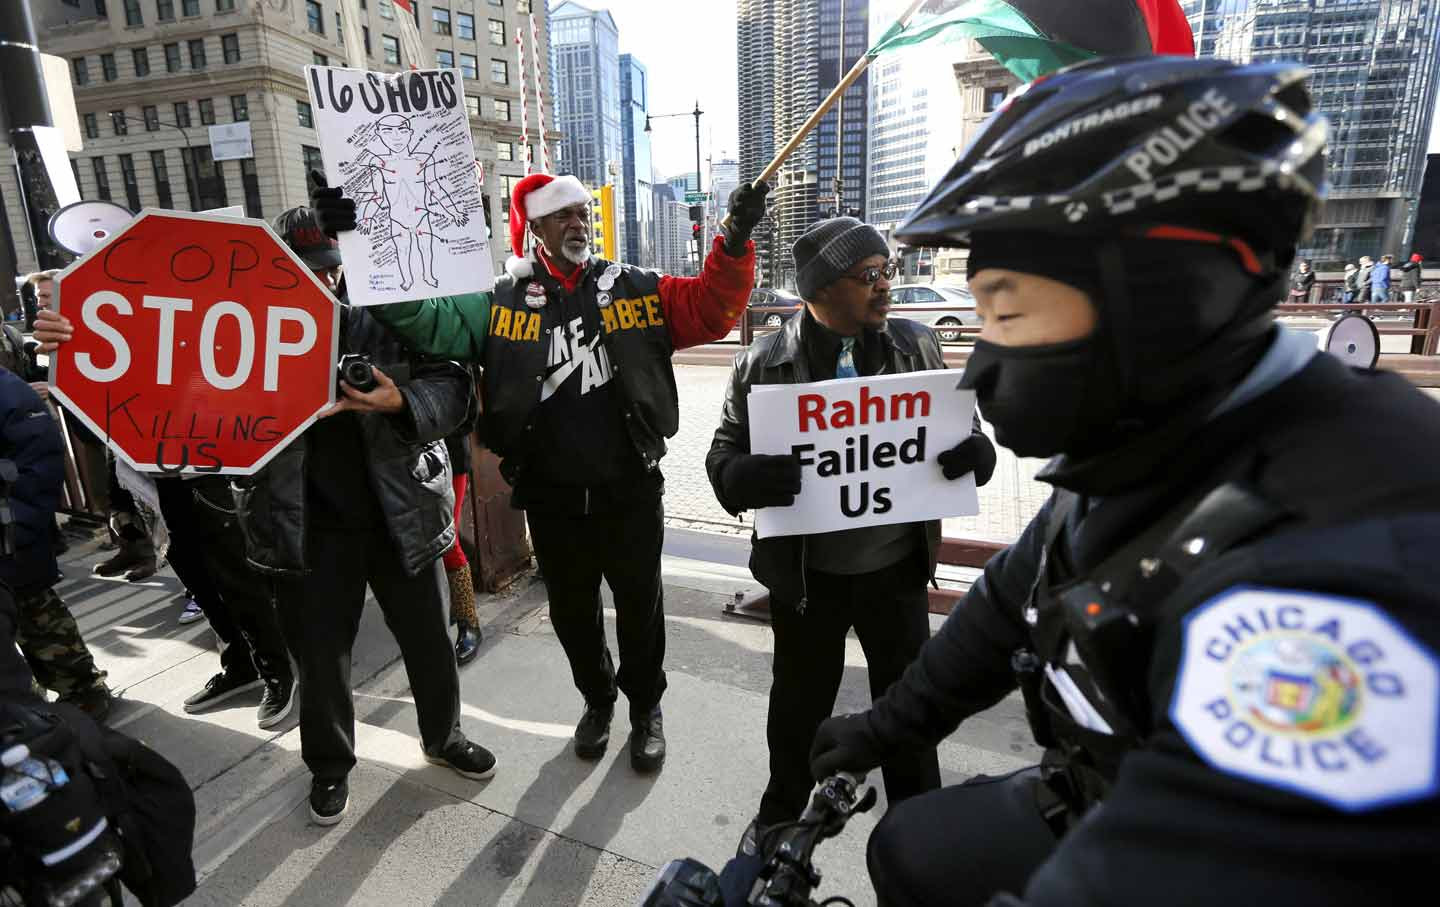 Chicago PD protest